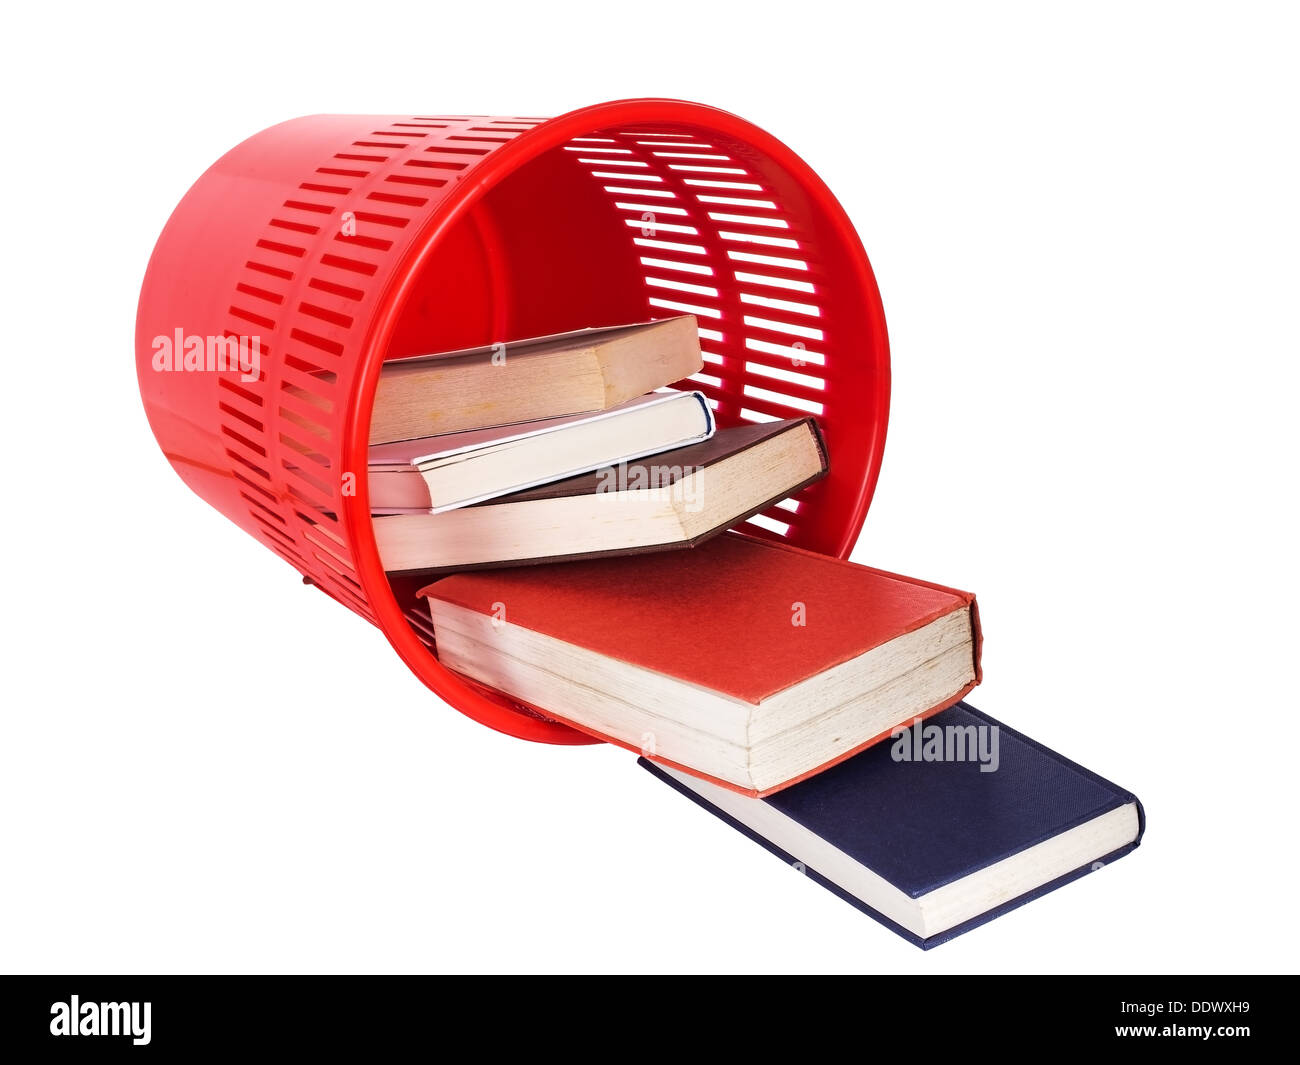 Books in bin - old style learning. - Stock Image